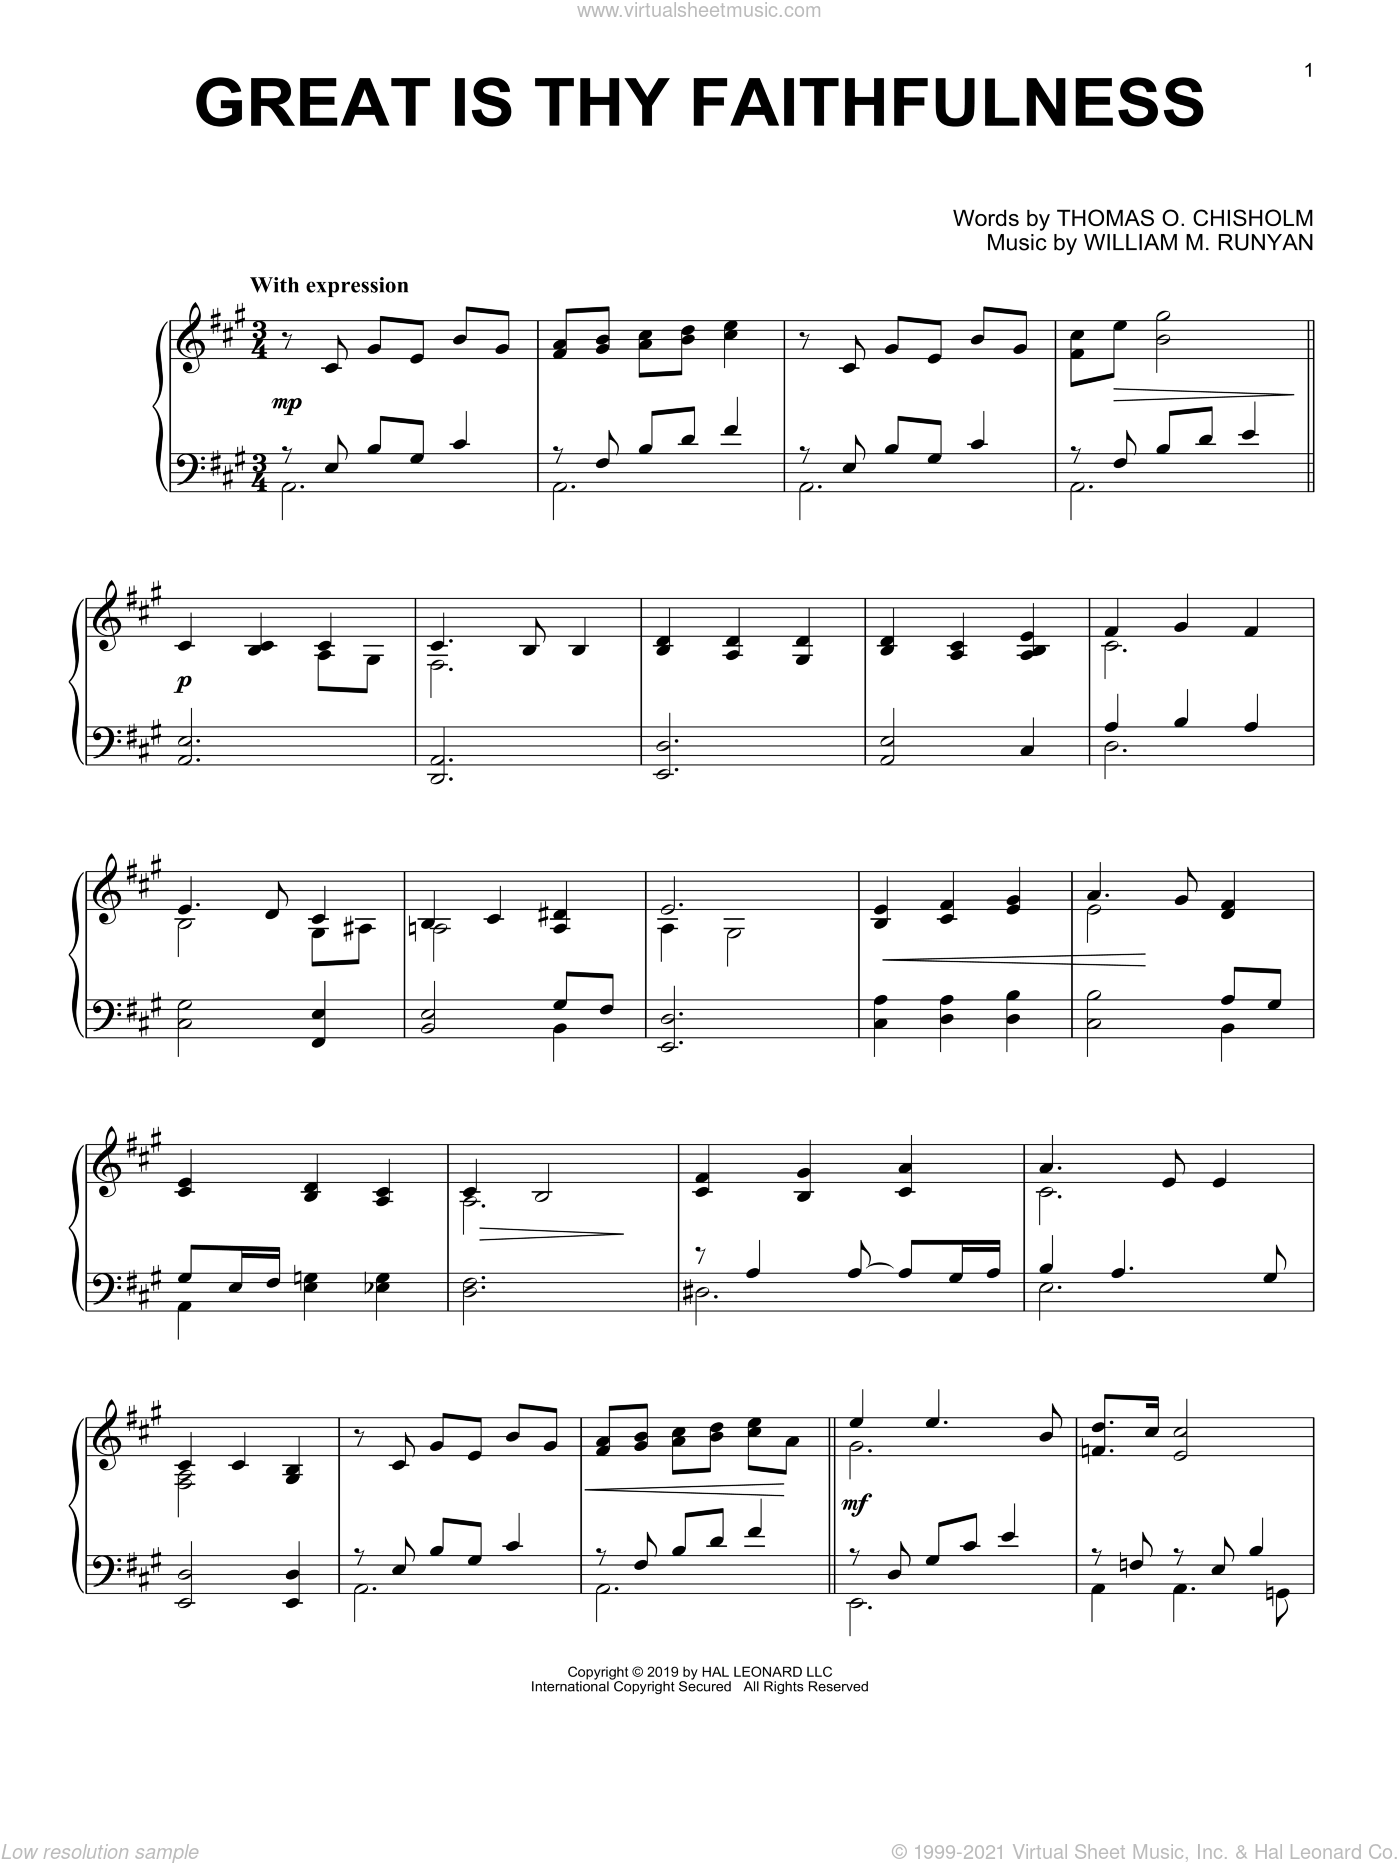 Great Is Thy Faithfulness, (intermediate) sheet music for piano solo by Thomas O. Chisholm and William M. Runyan, intermediate skill level